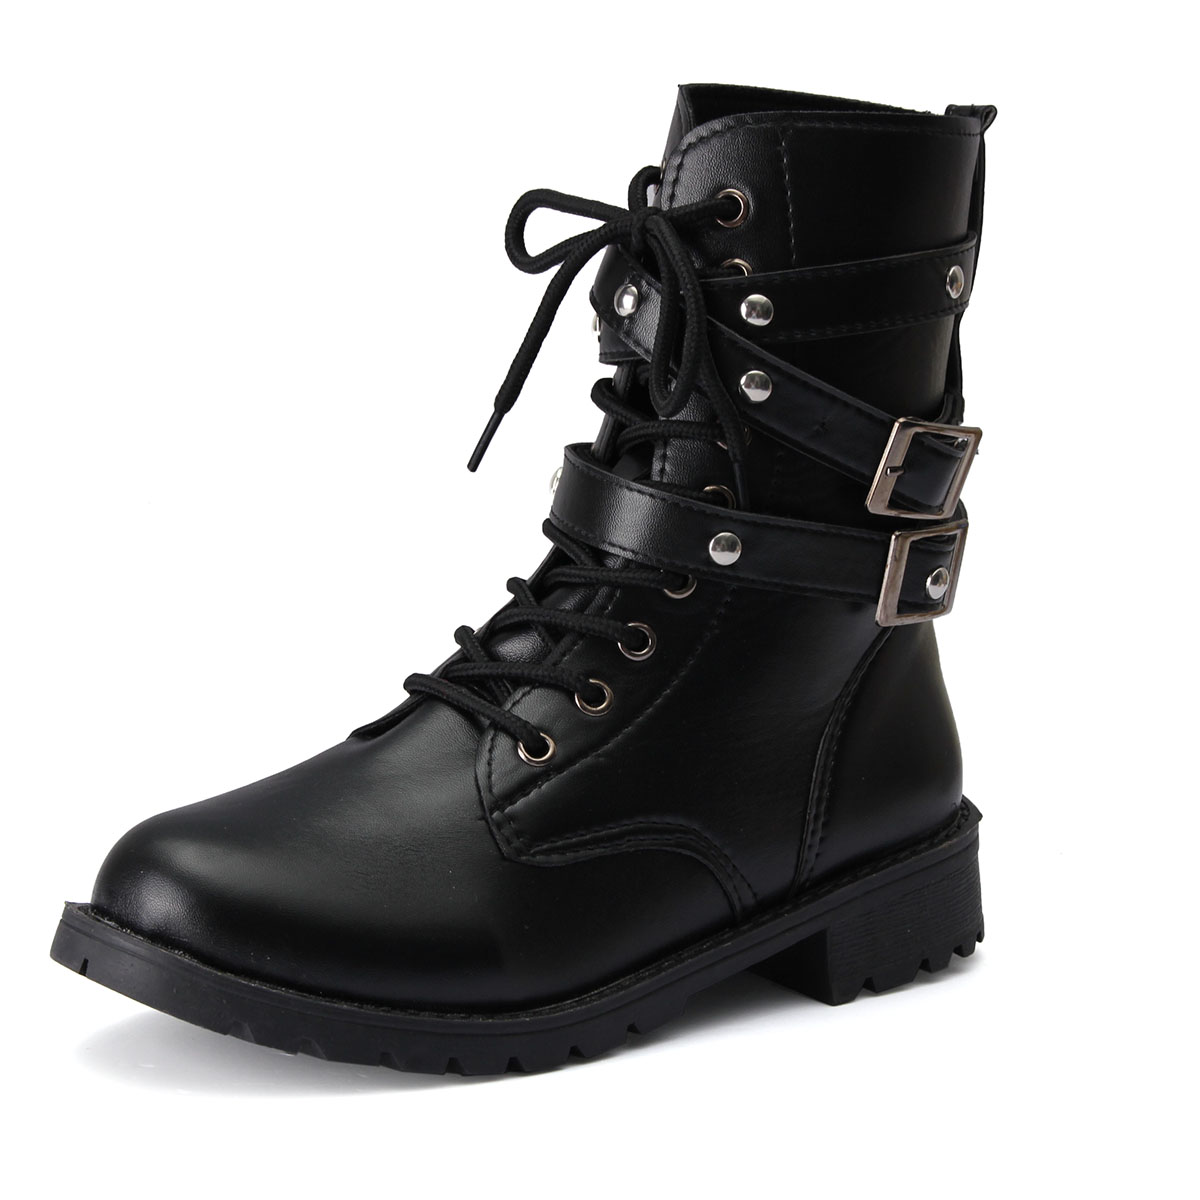 Cheap Black Boots For Women 2017 | Boot Hto - Part 124